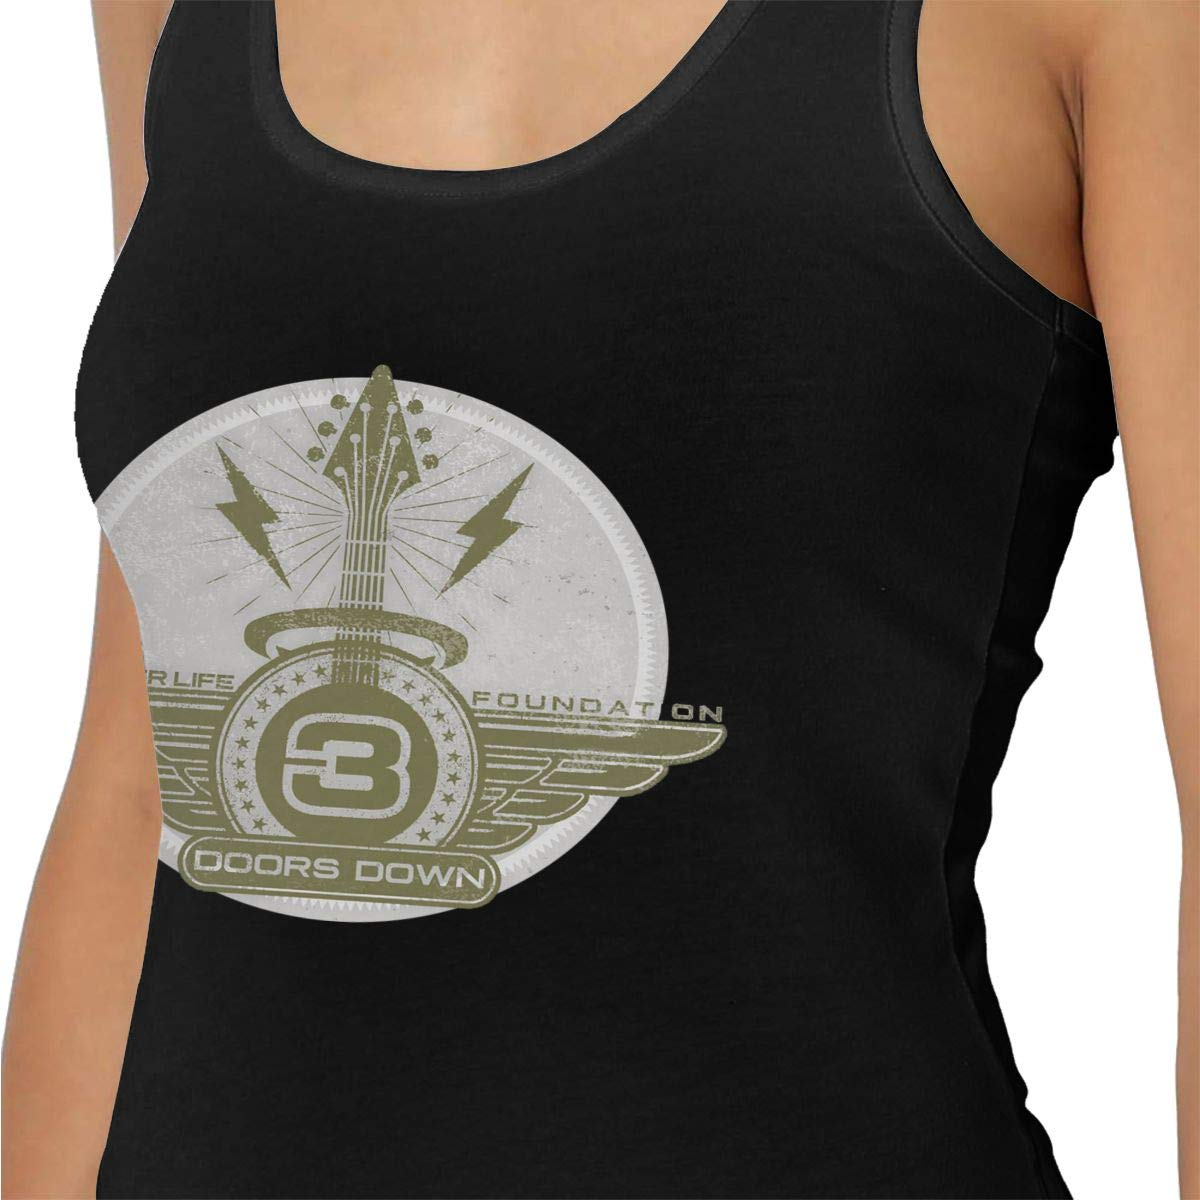 3 Doors Down Tank Tops for Women Yoga Tops Activewear Workout Clothes